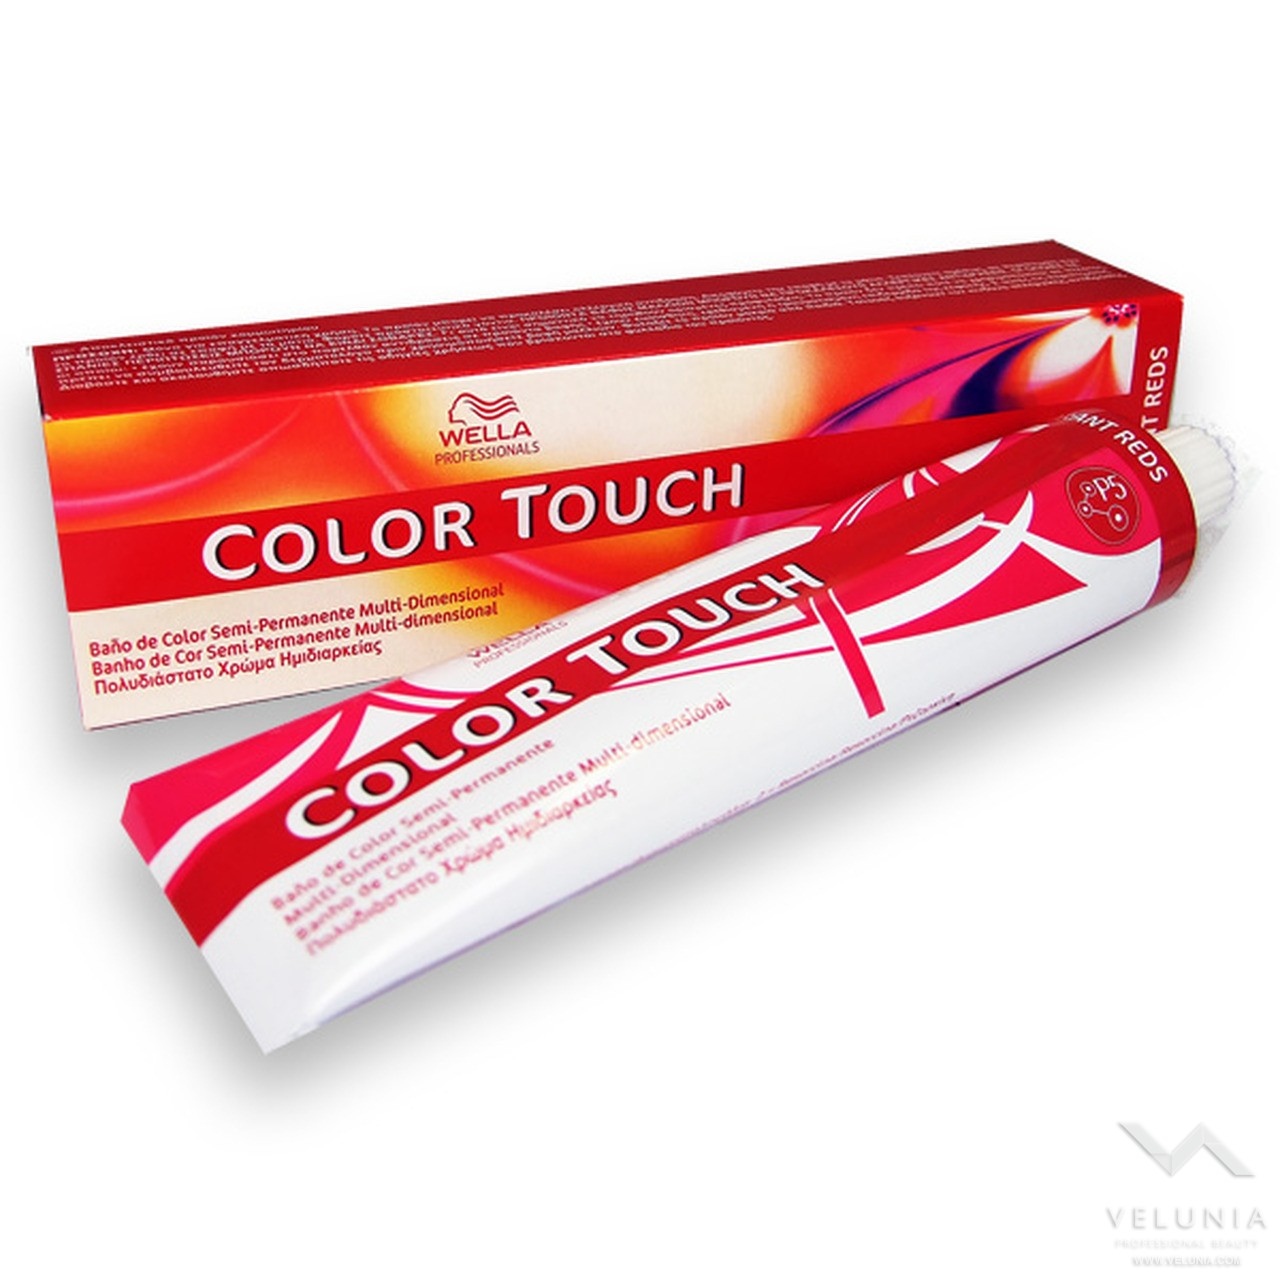 Wella Color Touch - /74 Sabbia Ramato RELIGHTS RED 1